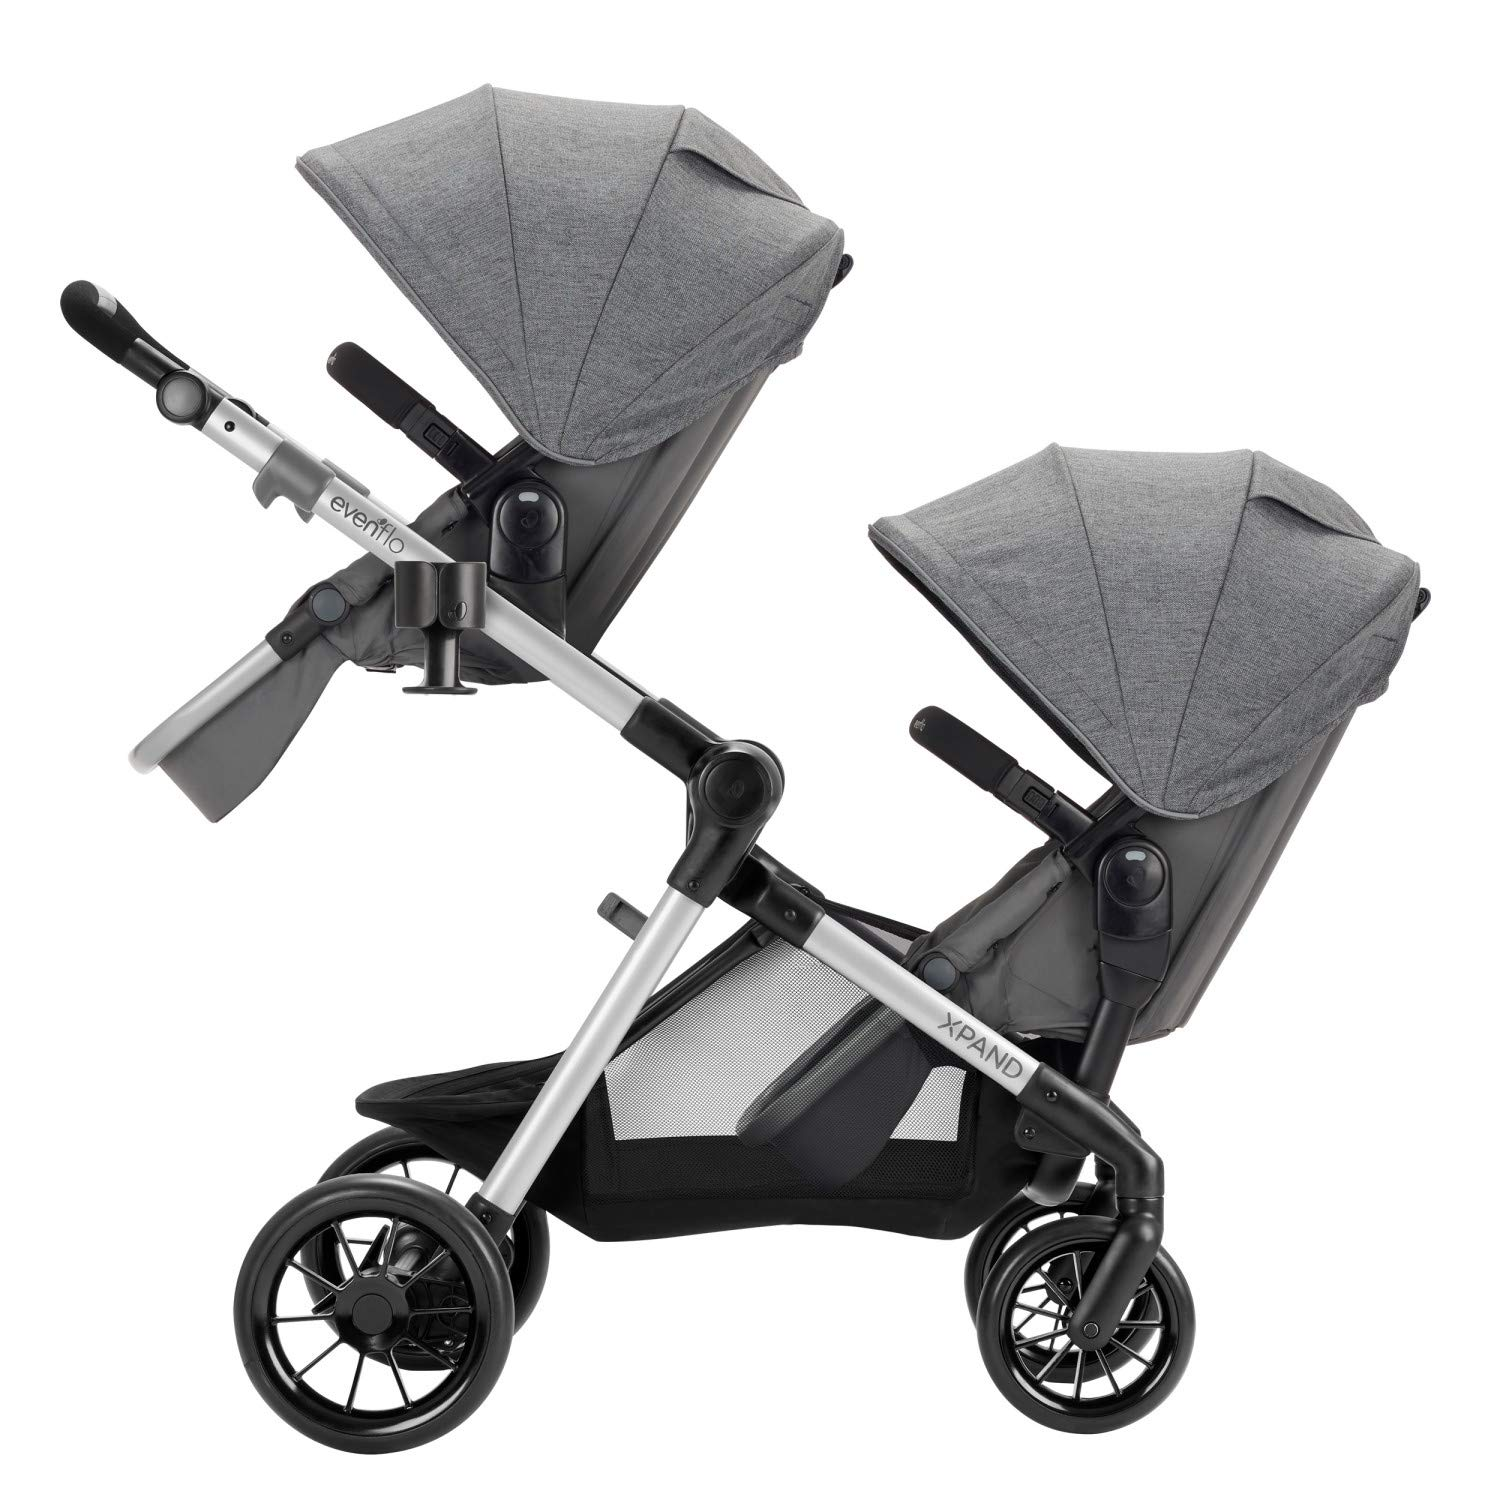 Evenflo 63012254 Second Seat for Pivot Xpand Stroller ...